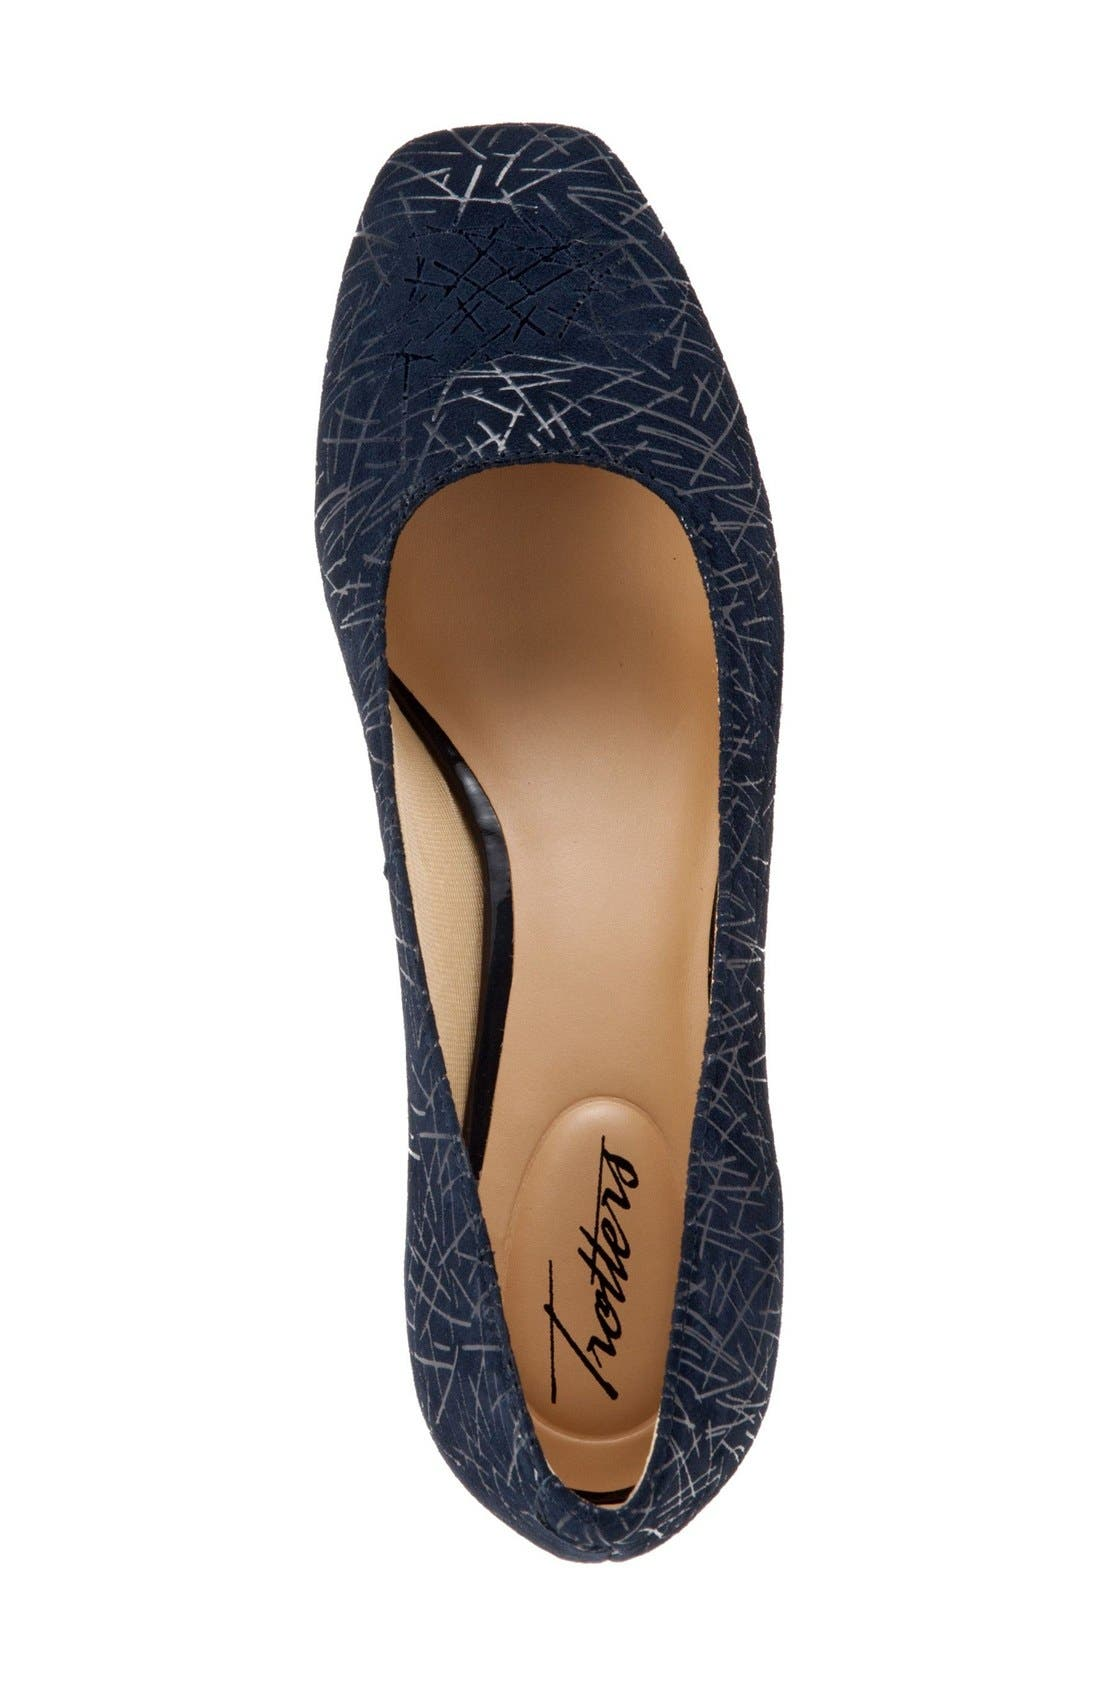 'Lola' Pump,                             Alternate thumbnail 3, color,                             Navy Embossed Leather